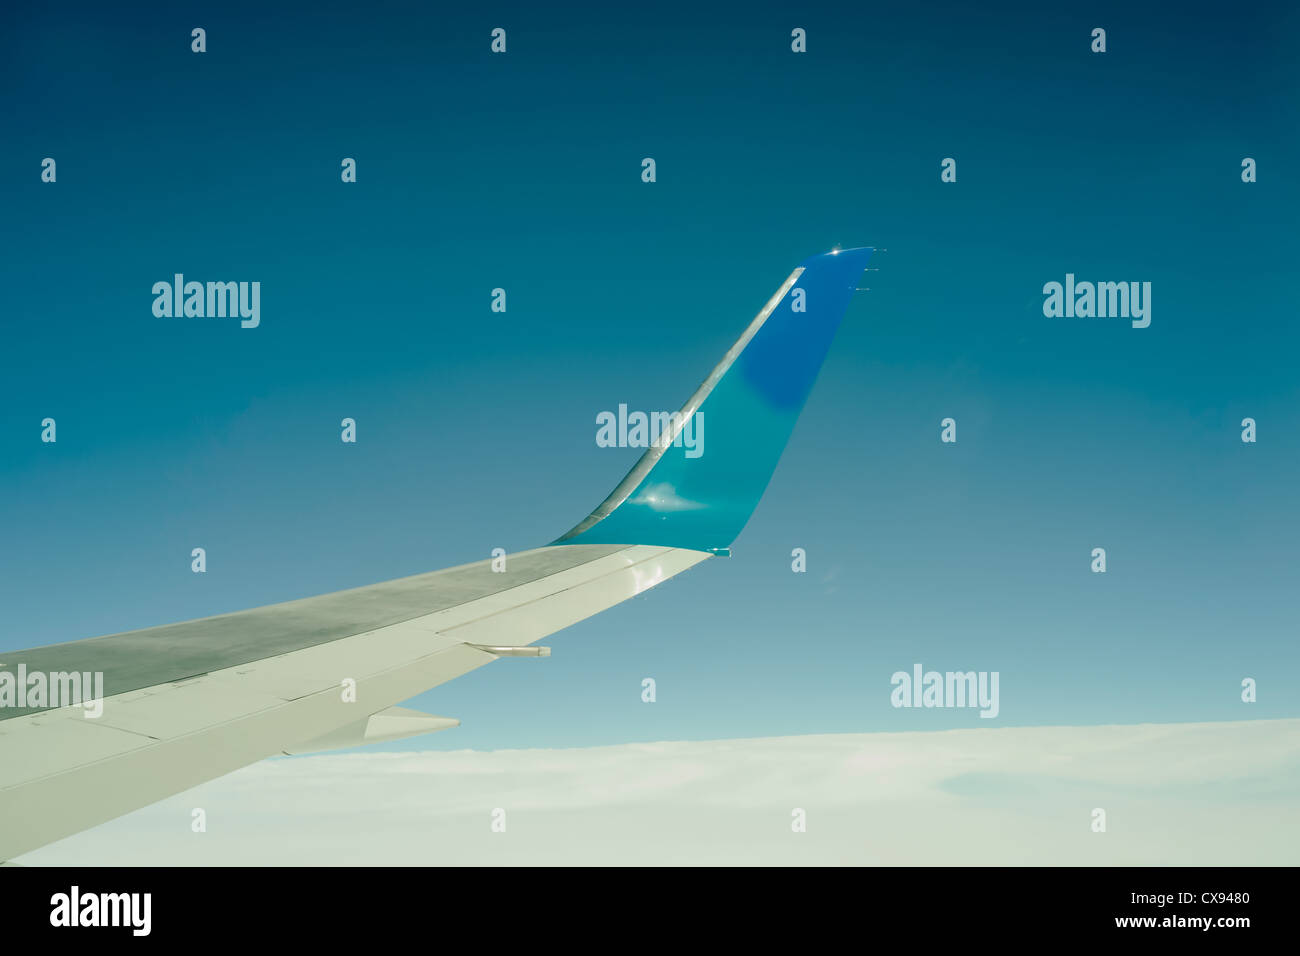 Airliner wing above the cloud and against blue sky. - Stock Image